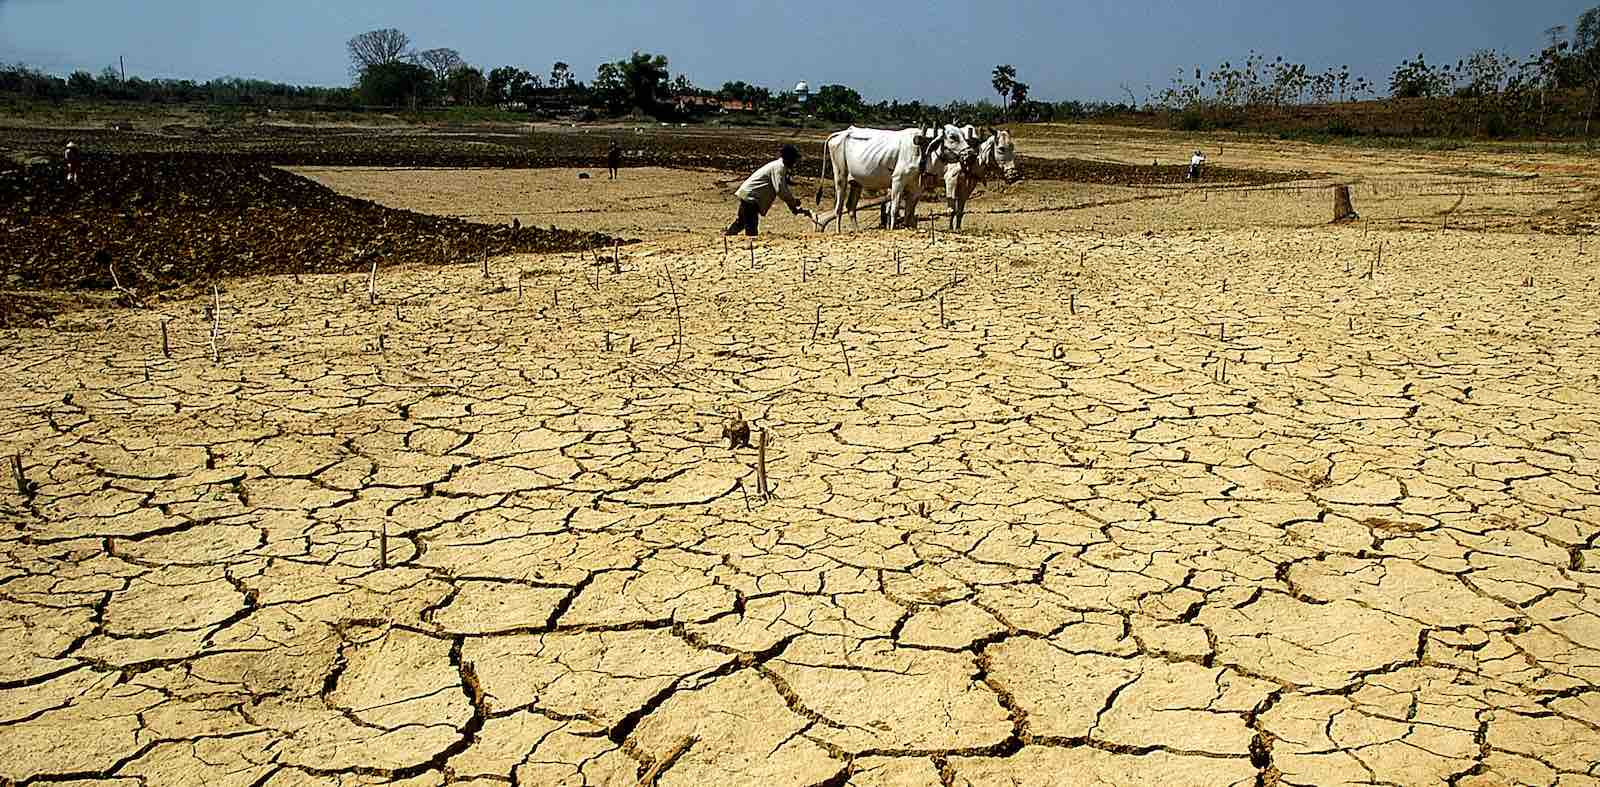 A farmer works a dried-out field in Central Java, Indonesia (Photo: Wf Sihardian via Getty)